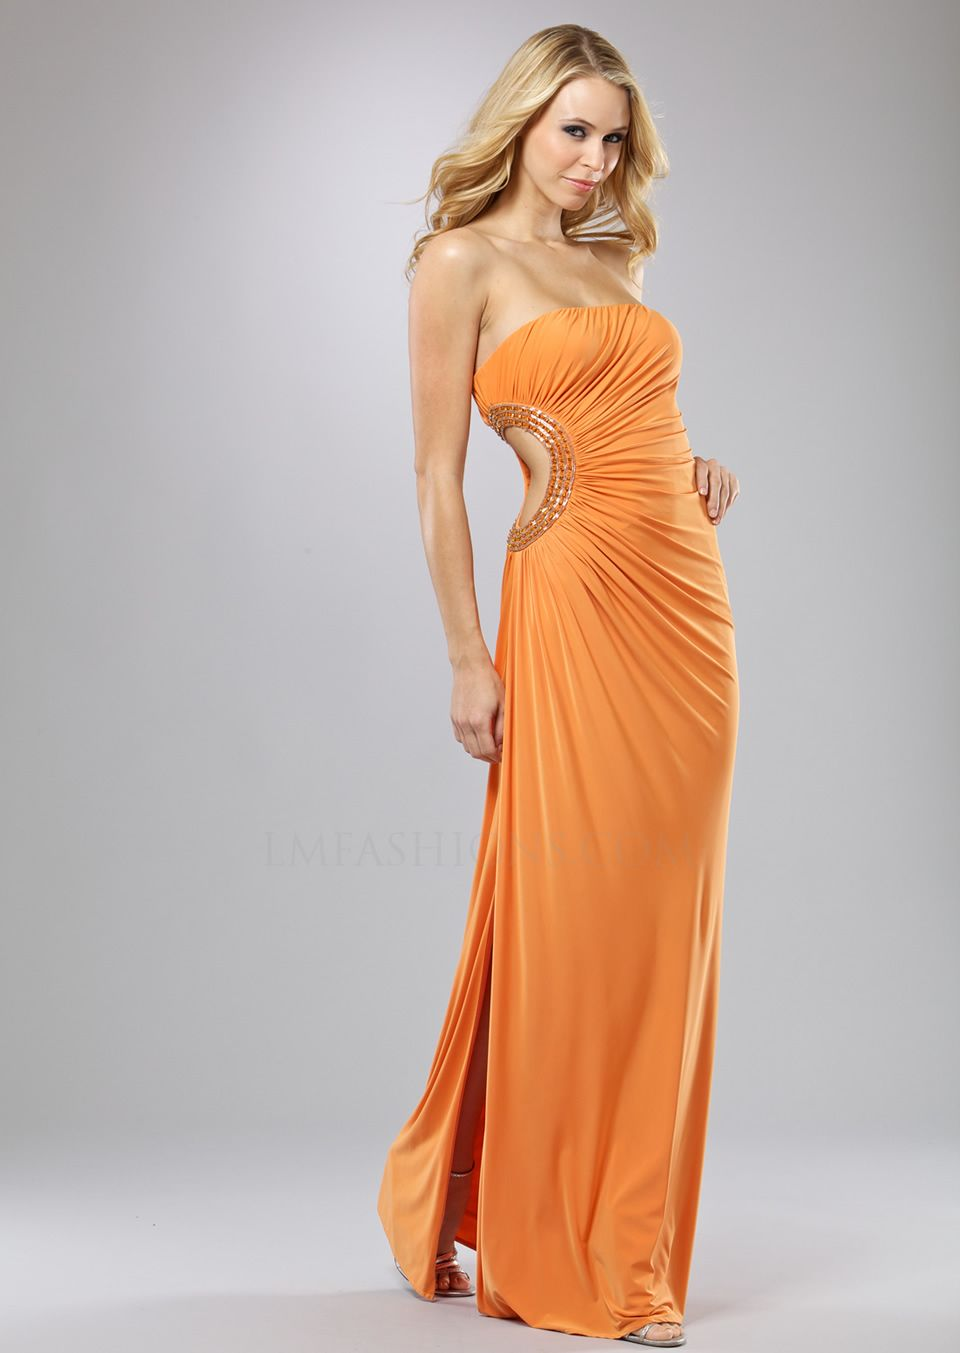 Orange evening dresses fashion trend prom dress party vackra